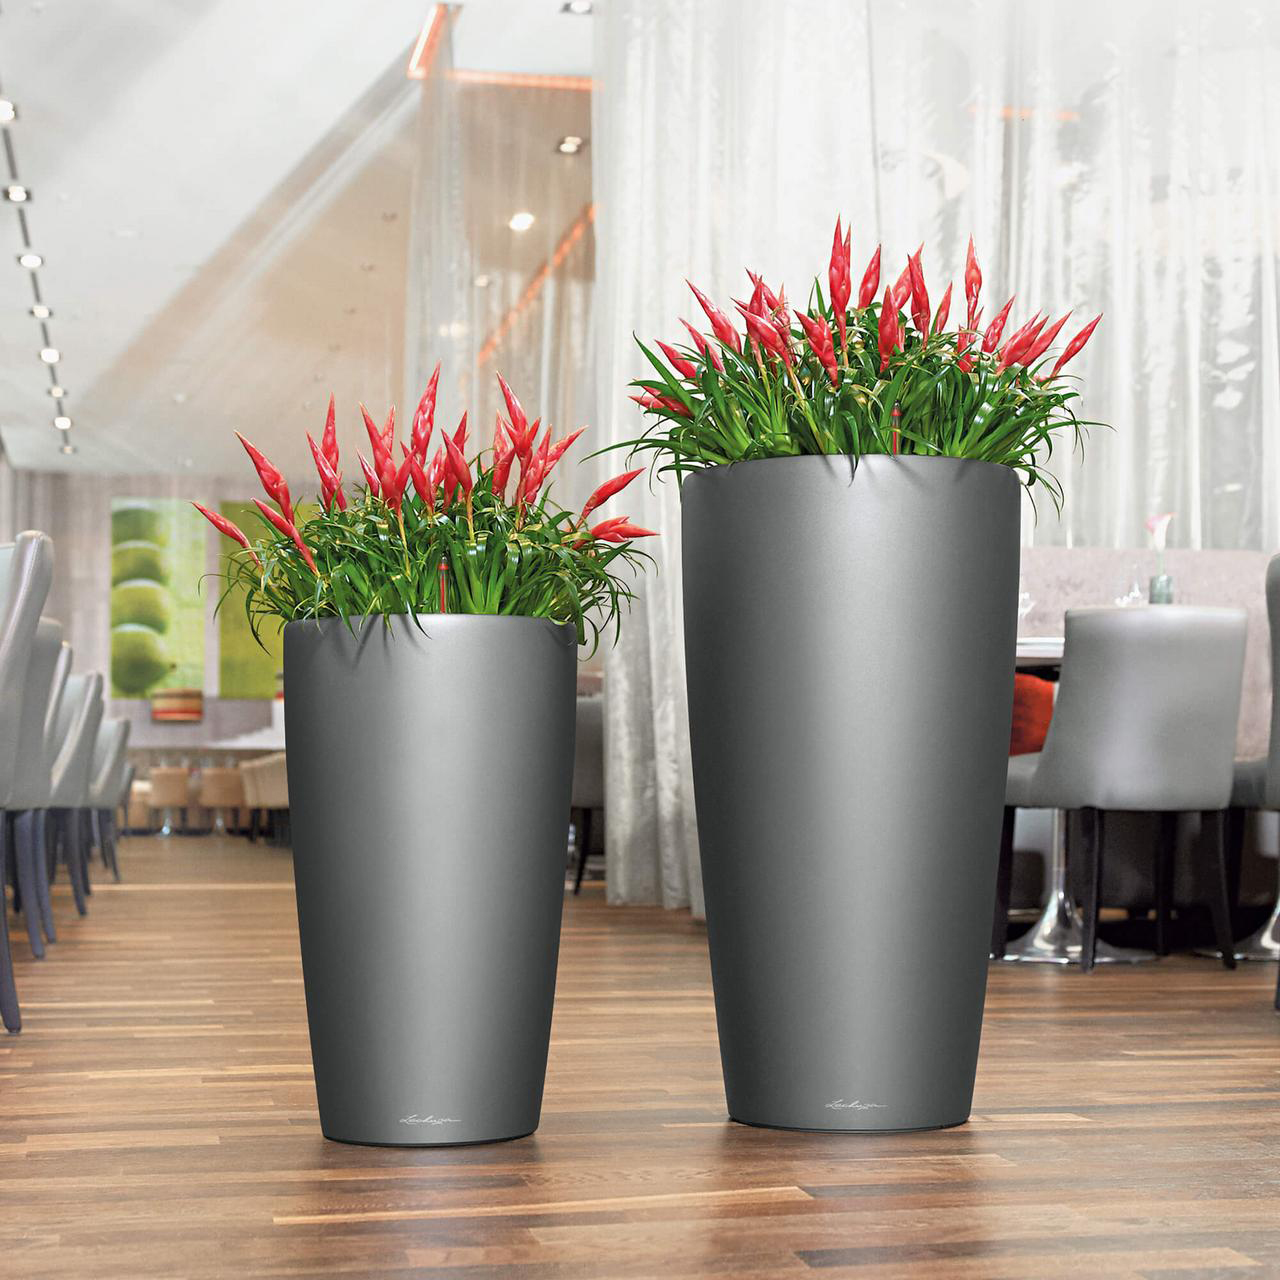 Lechuza Rondo Planter in metallic charcoal